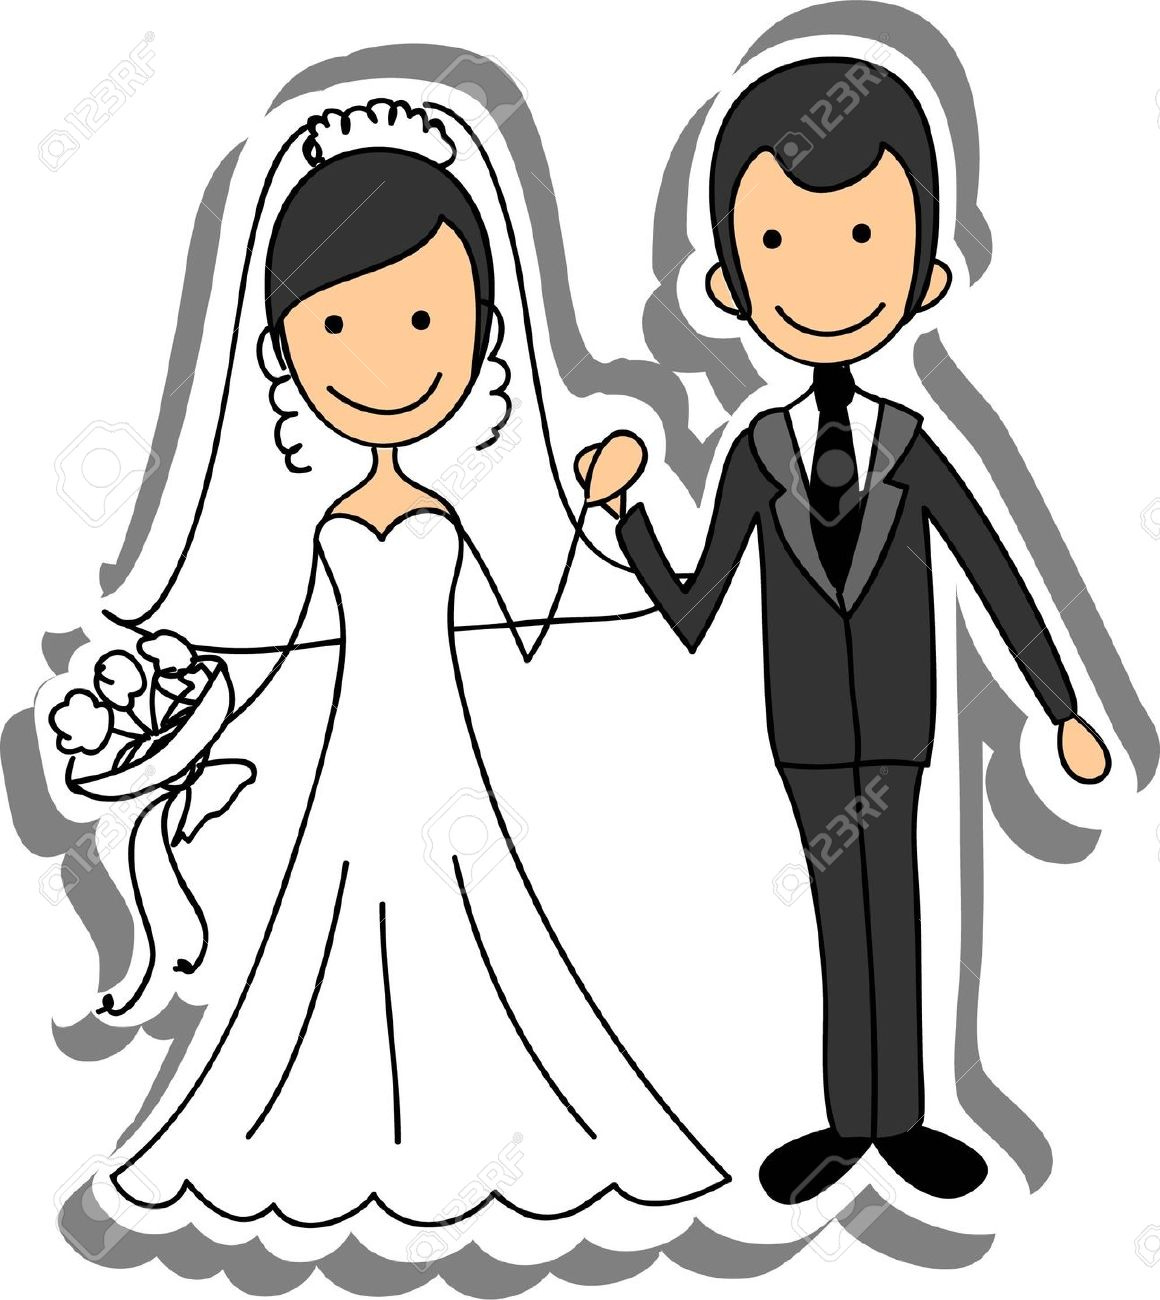 Bride and groom clipart wedding